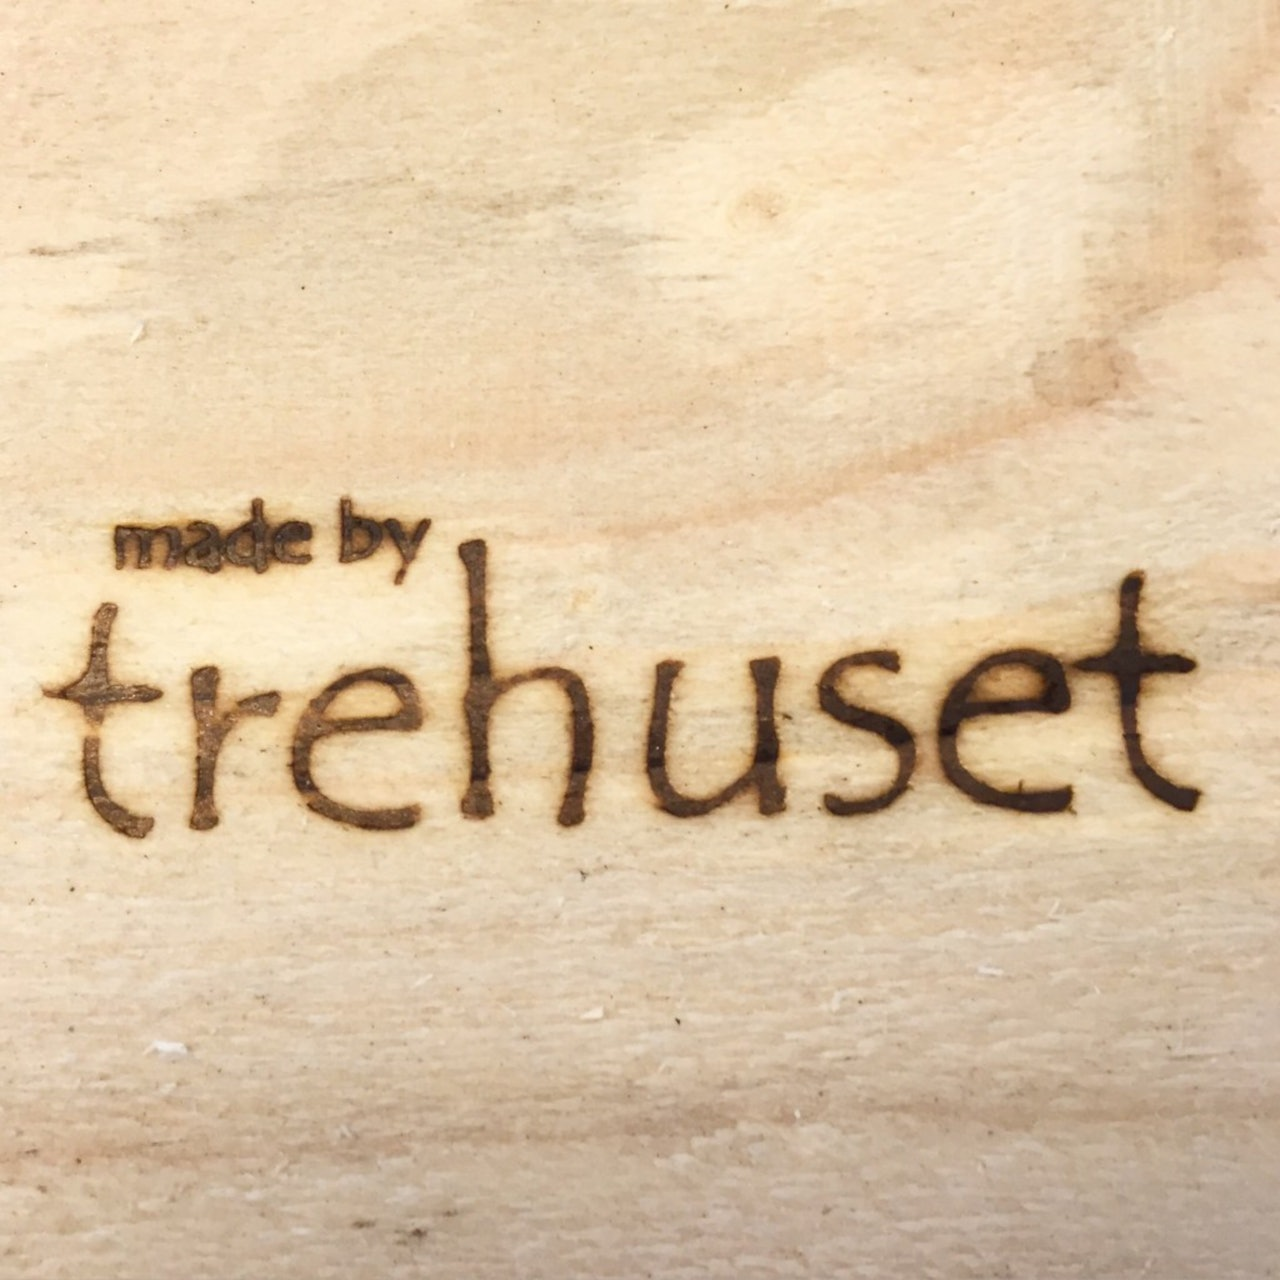 made by trehuset